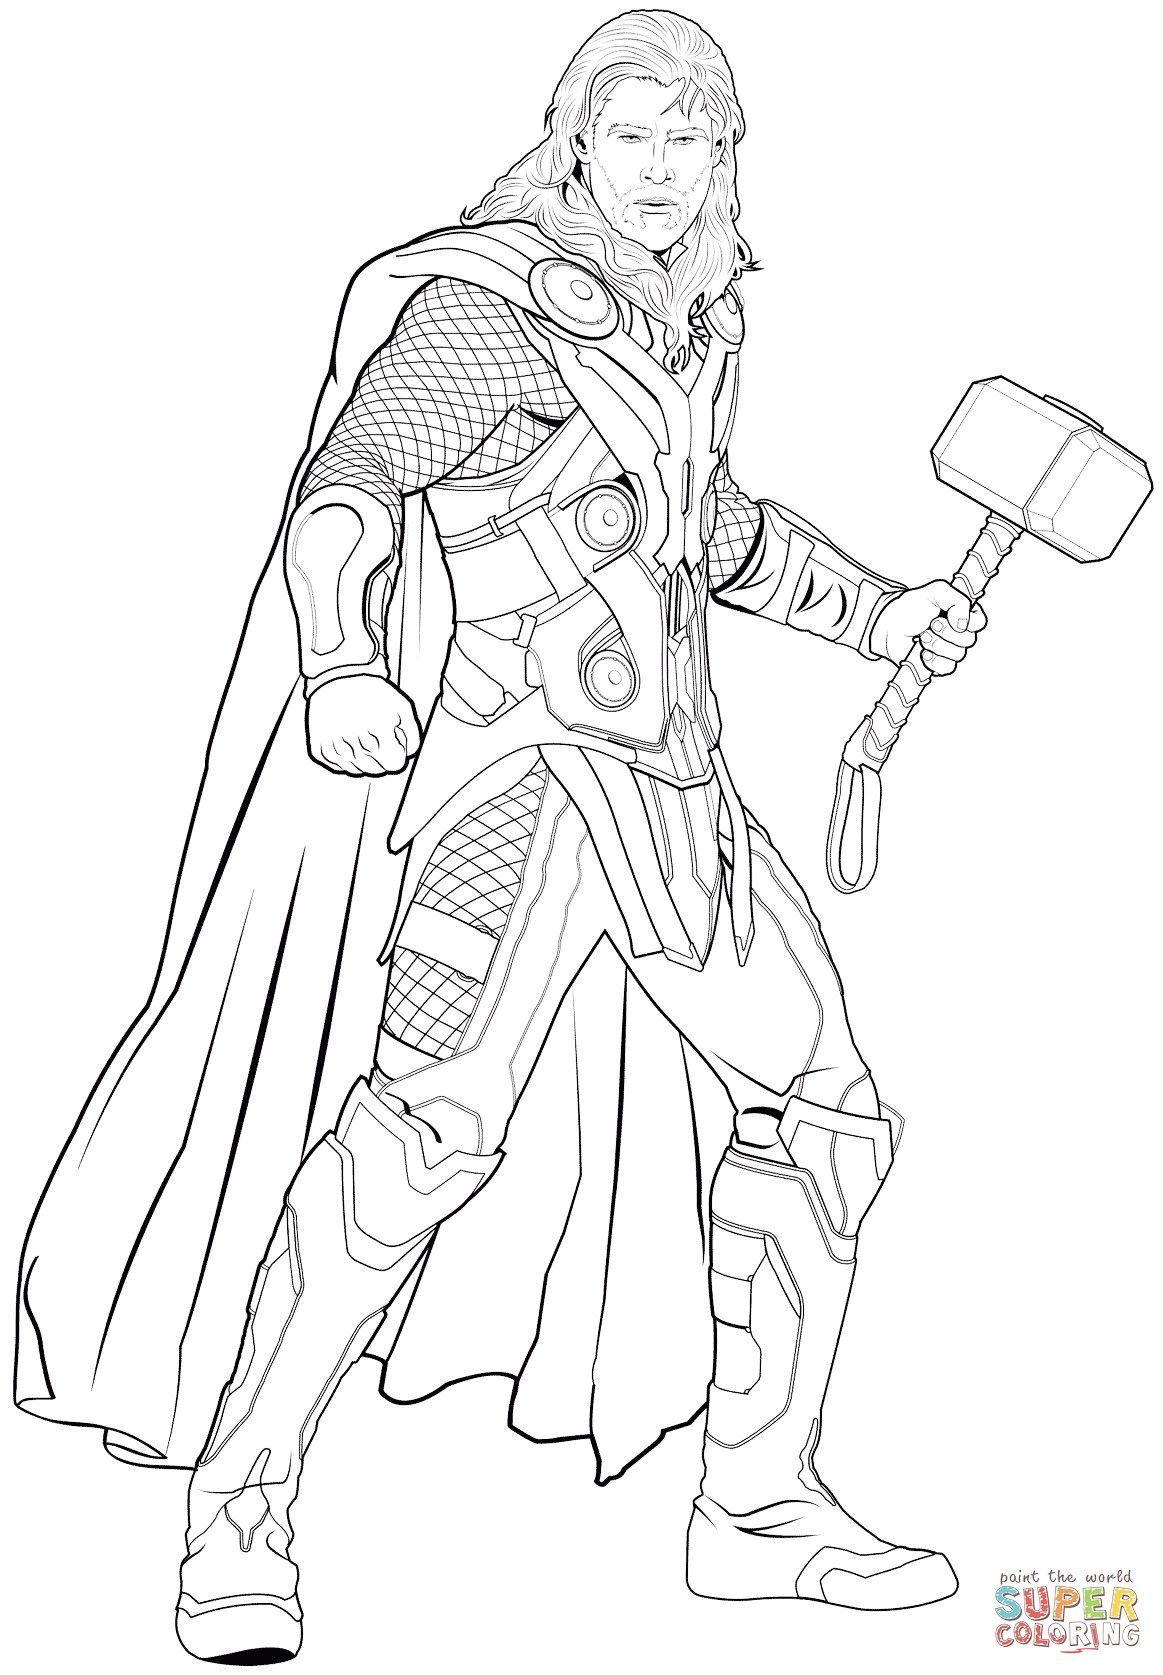 24 Amazing Photo Of Thor Coloring Pages Davemelillo Com Avengers Coloring Pages Avengers Coloring Marvel Coloring